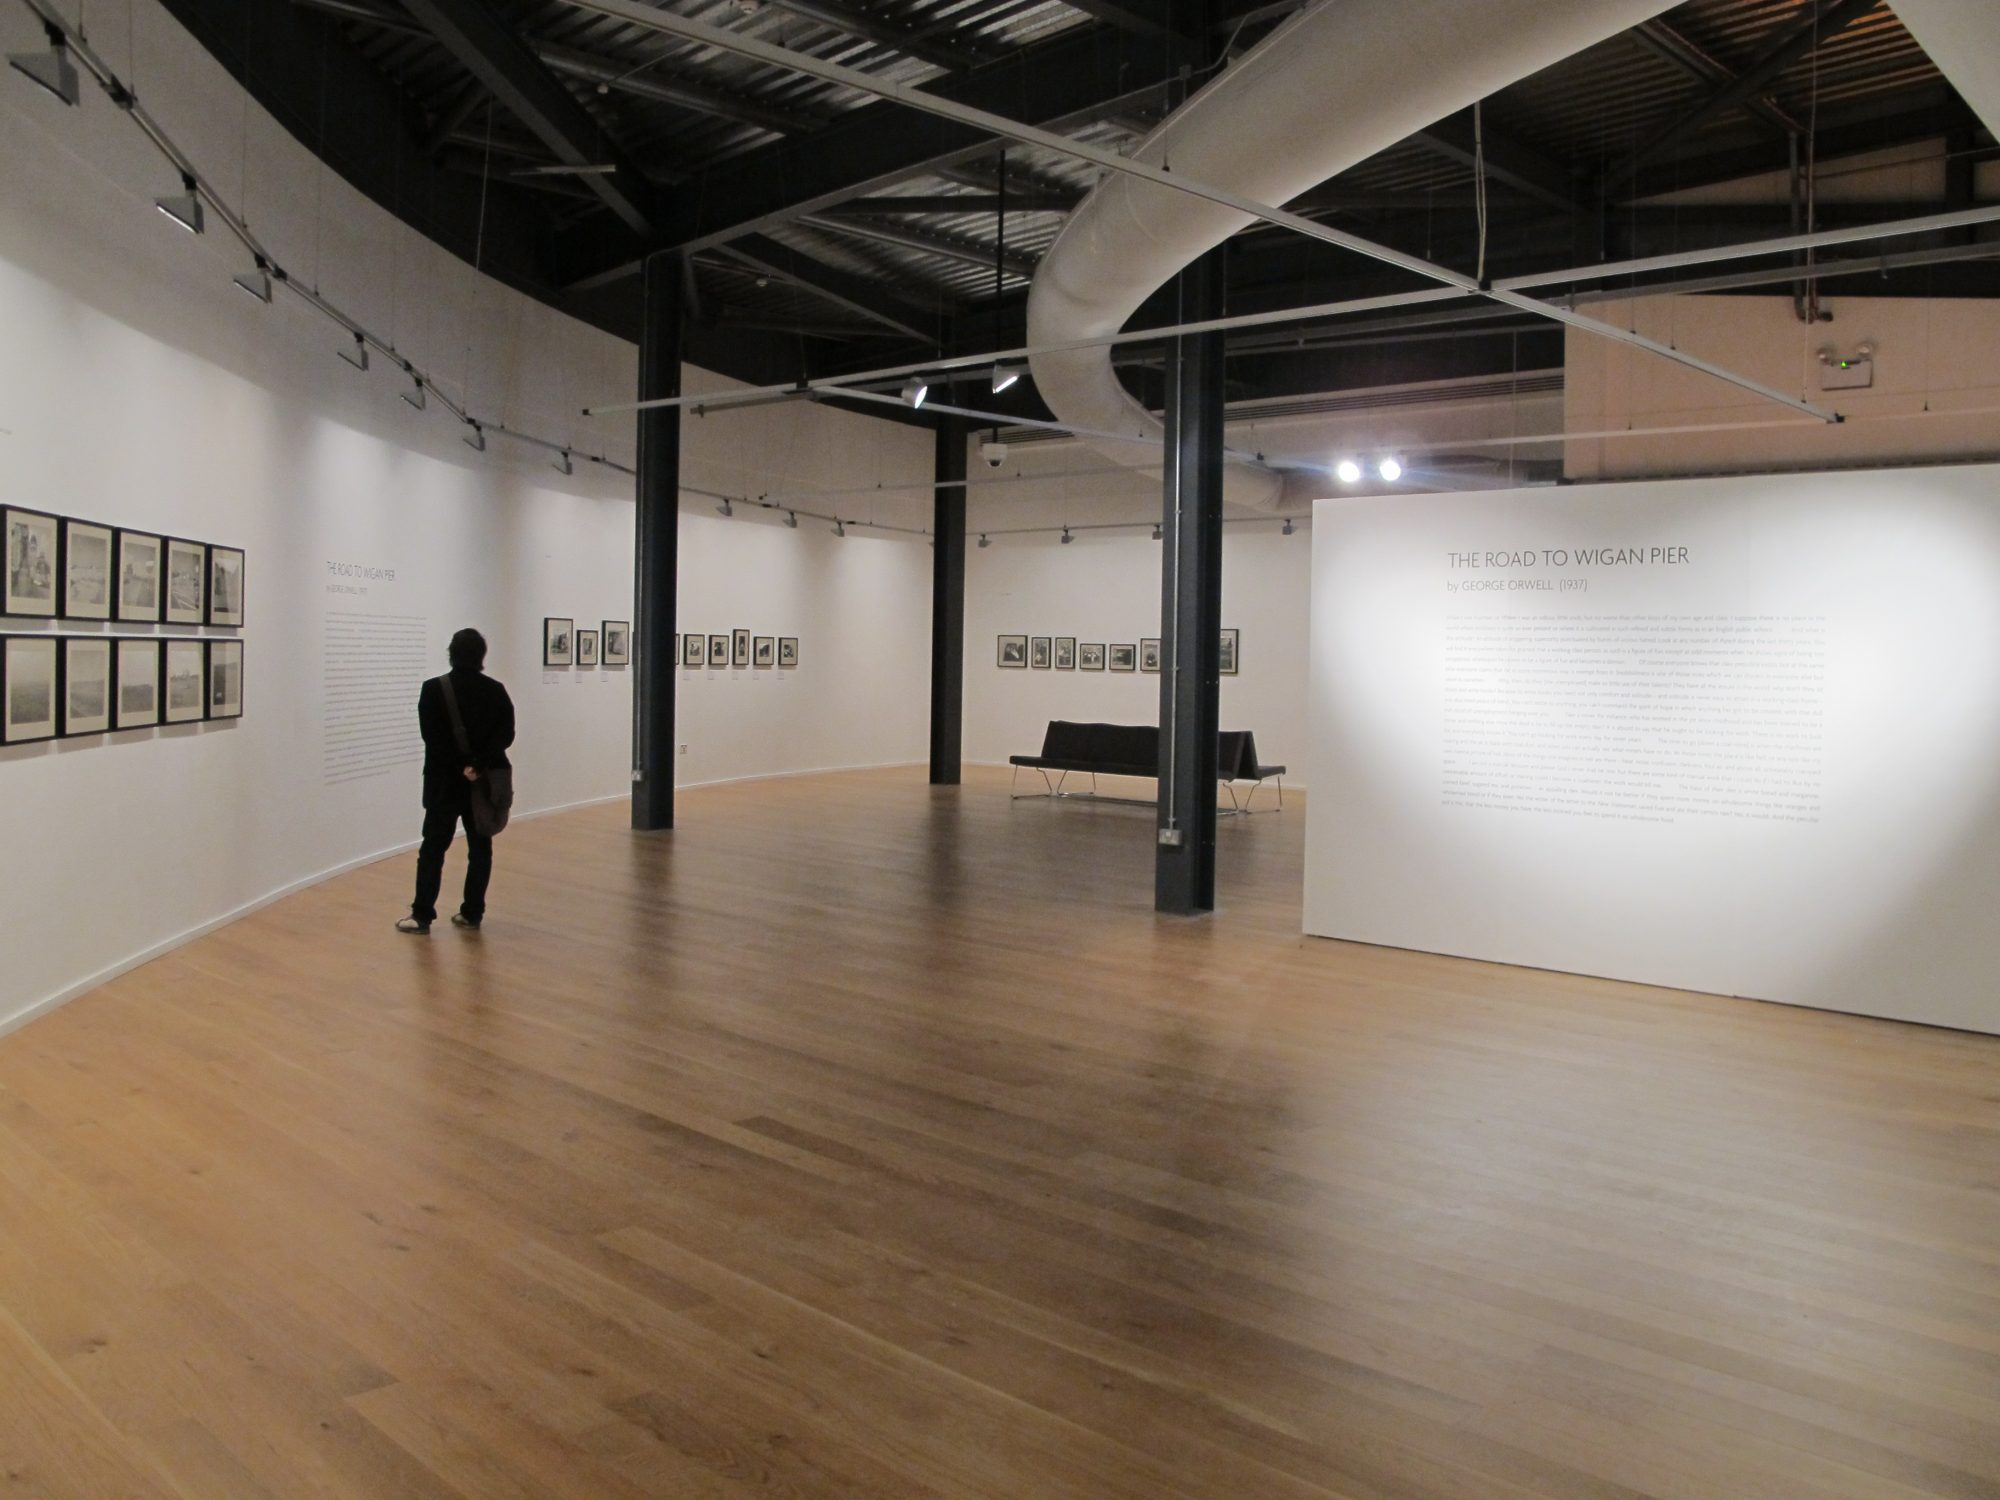 Roads to Wigan Pier — Impressions Gallery